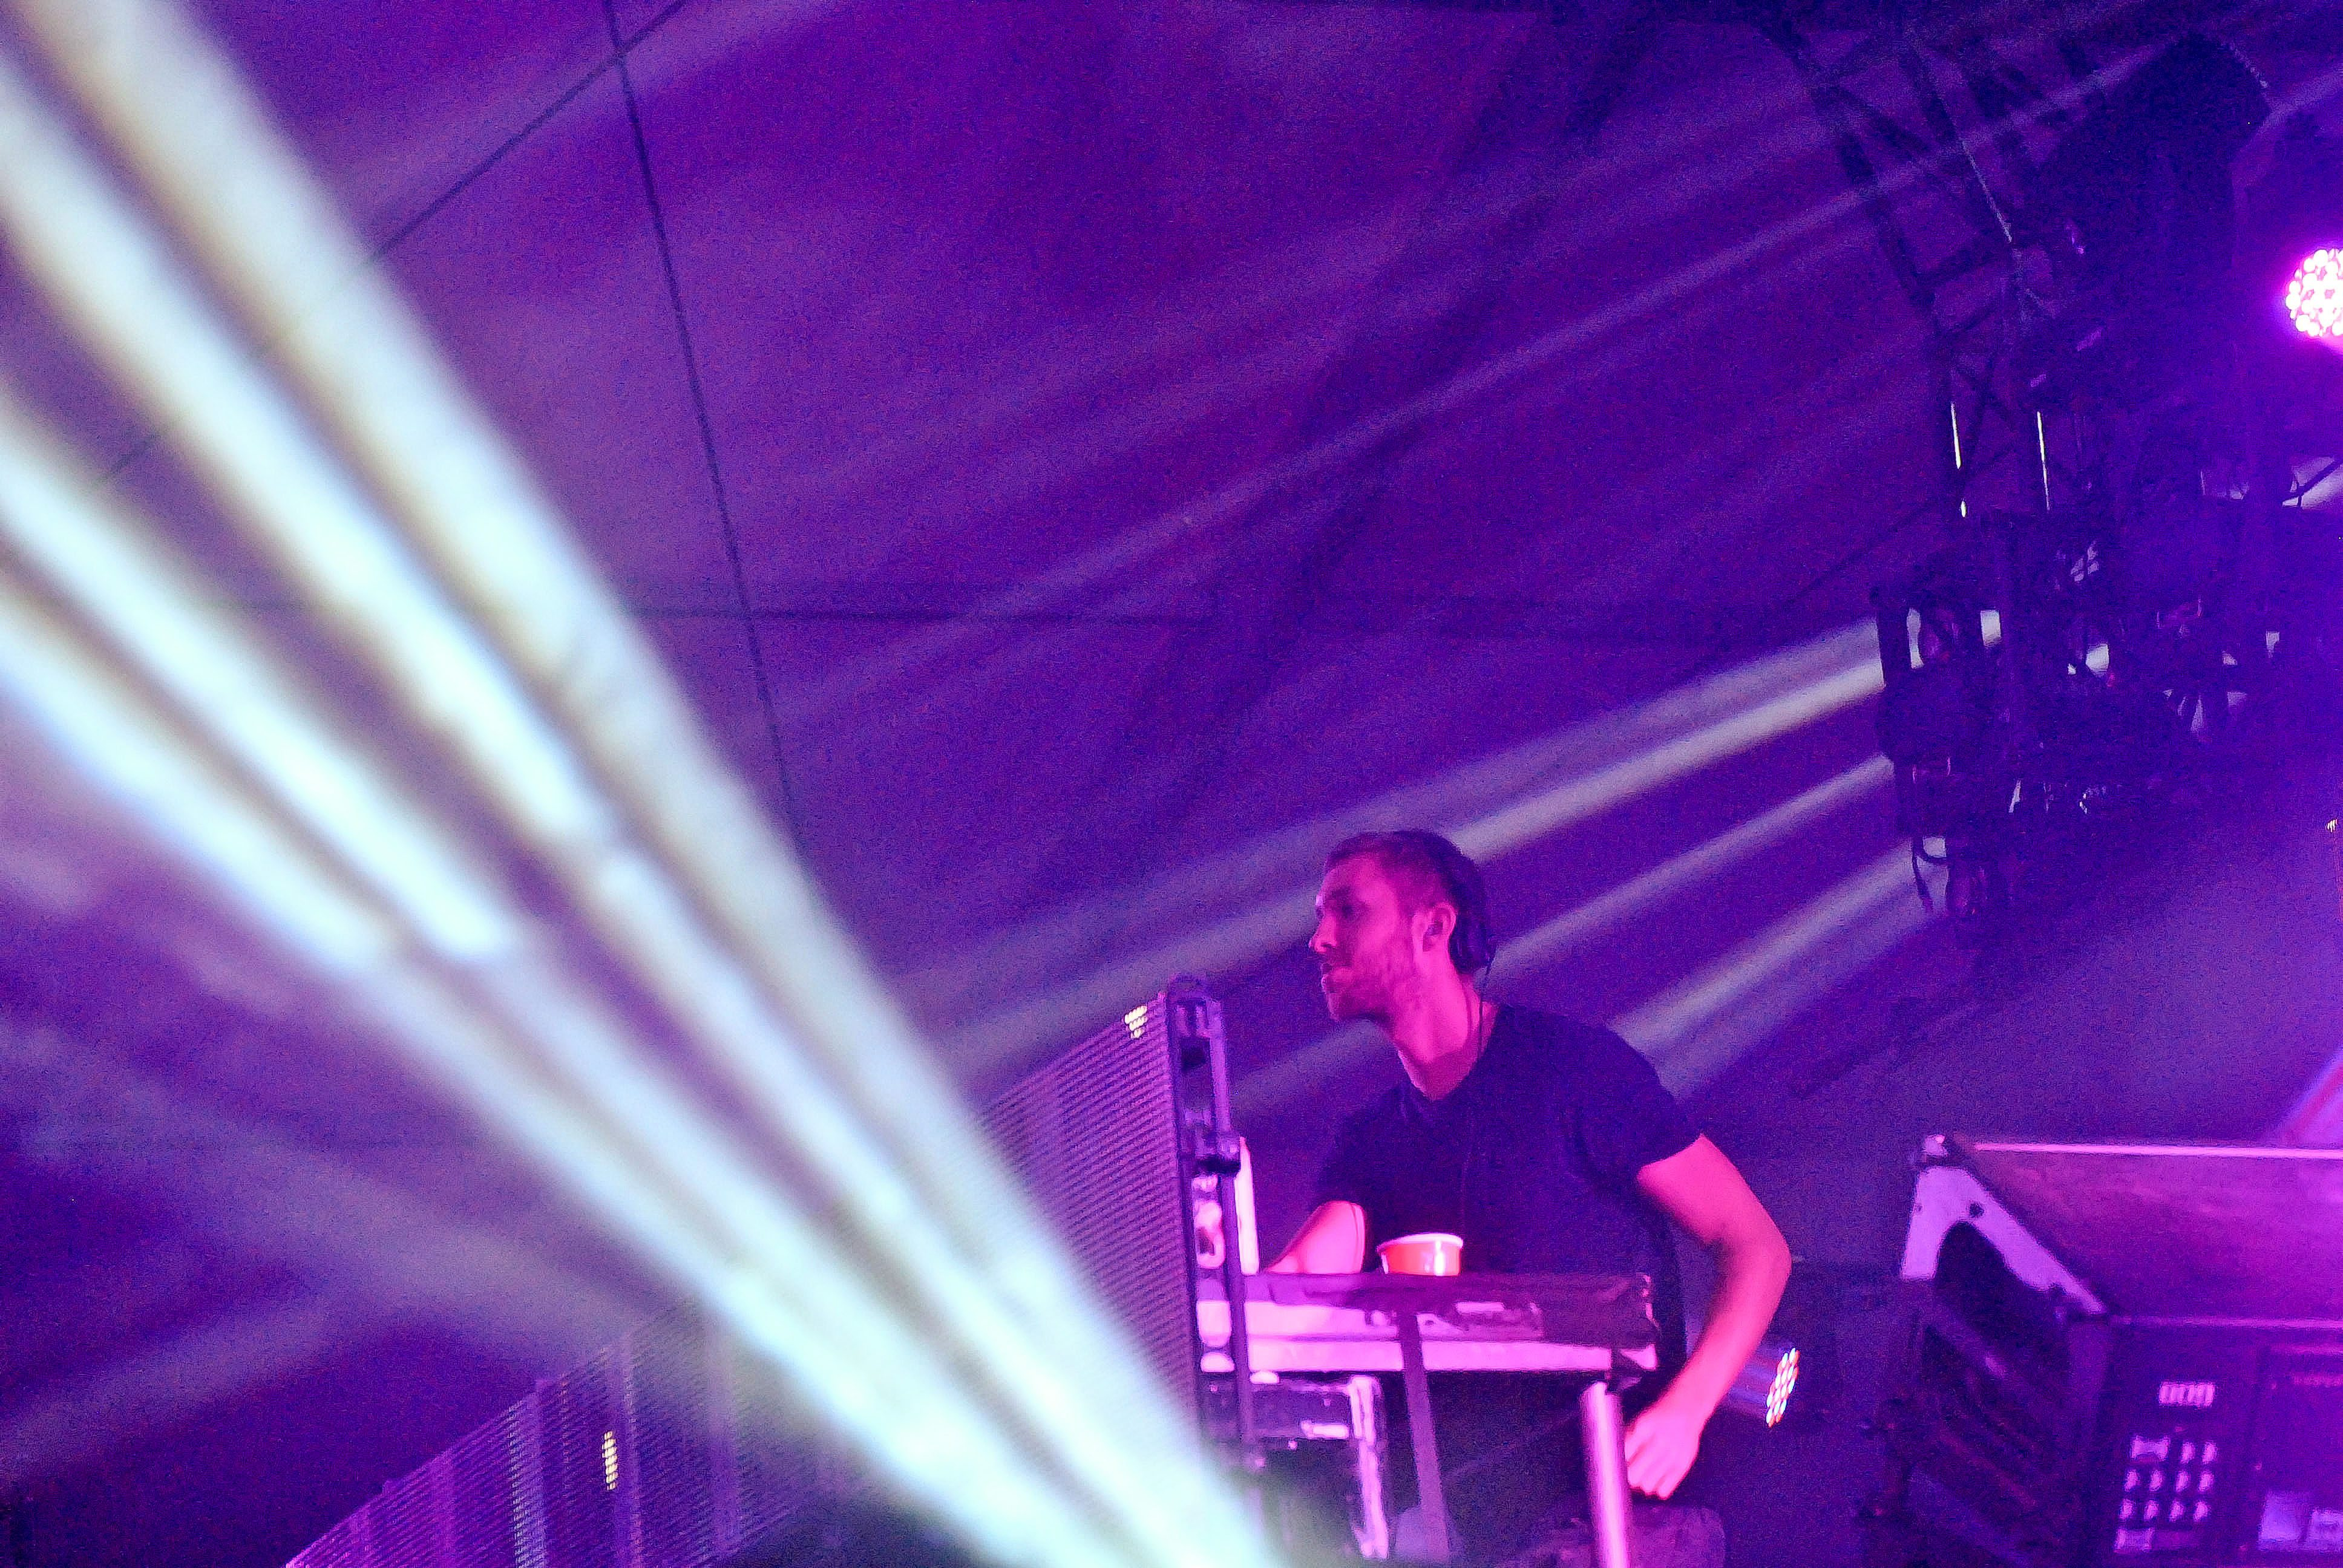 Calvin Harris Performs At Coachella 2016 With Rihanna, Big Sean And More